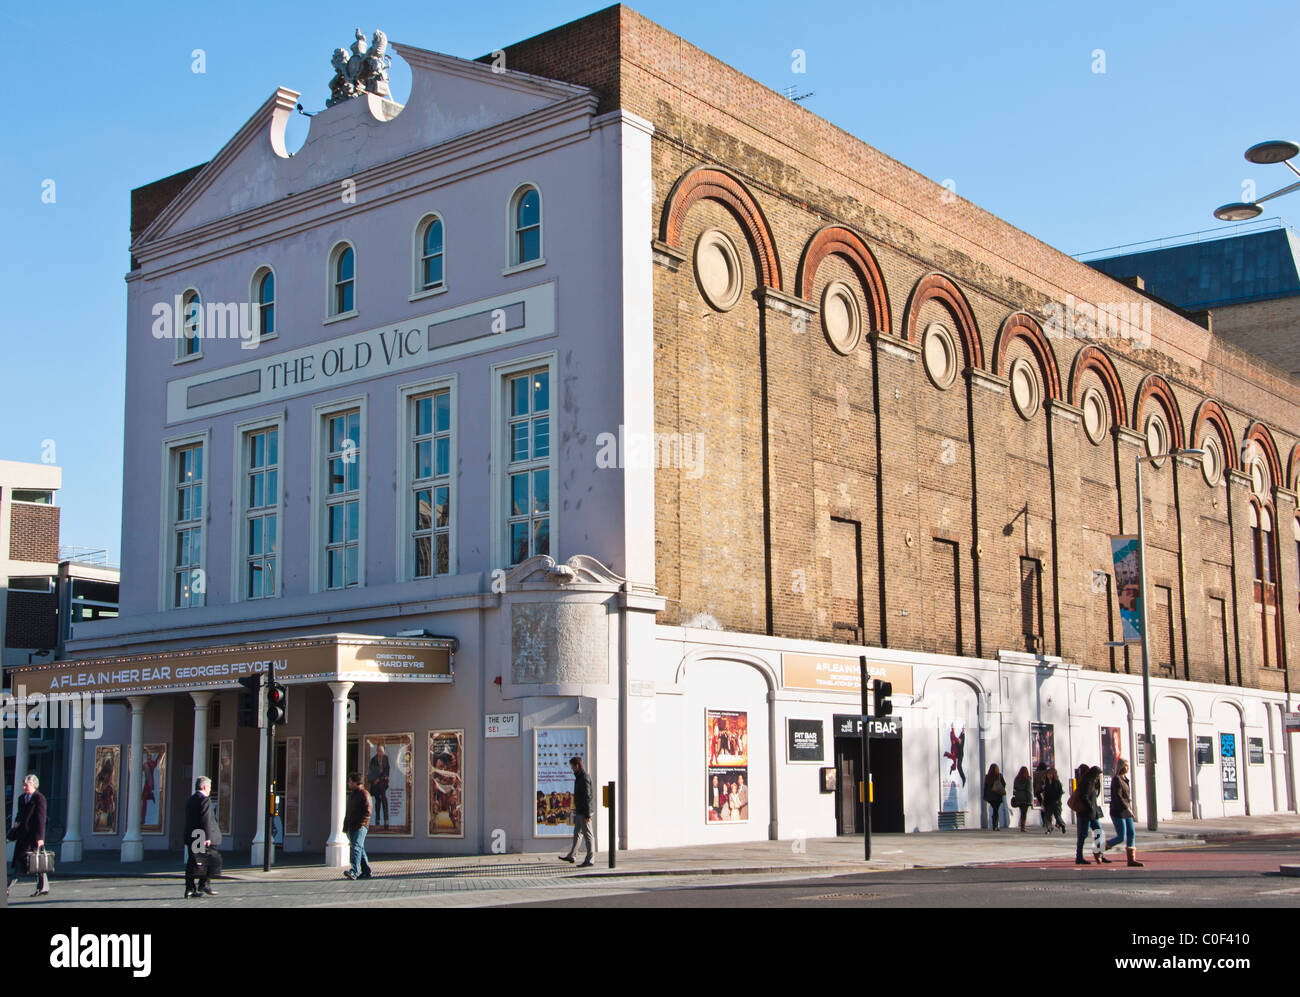 The Old Vic theatre, London, England. - Stock Image